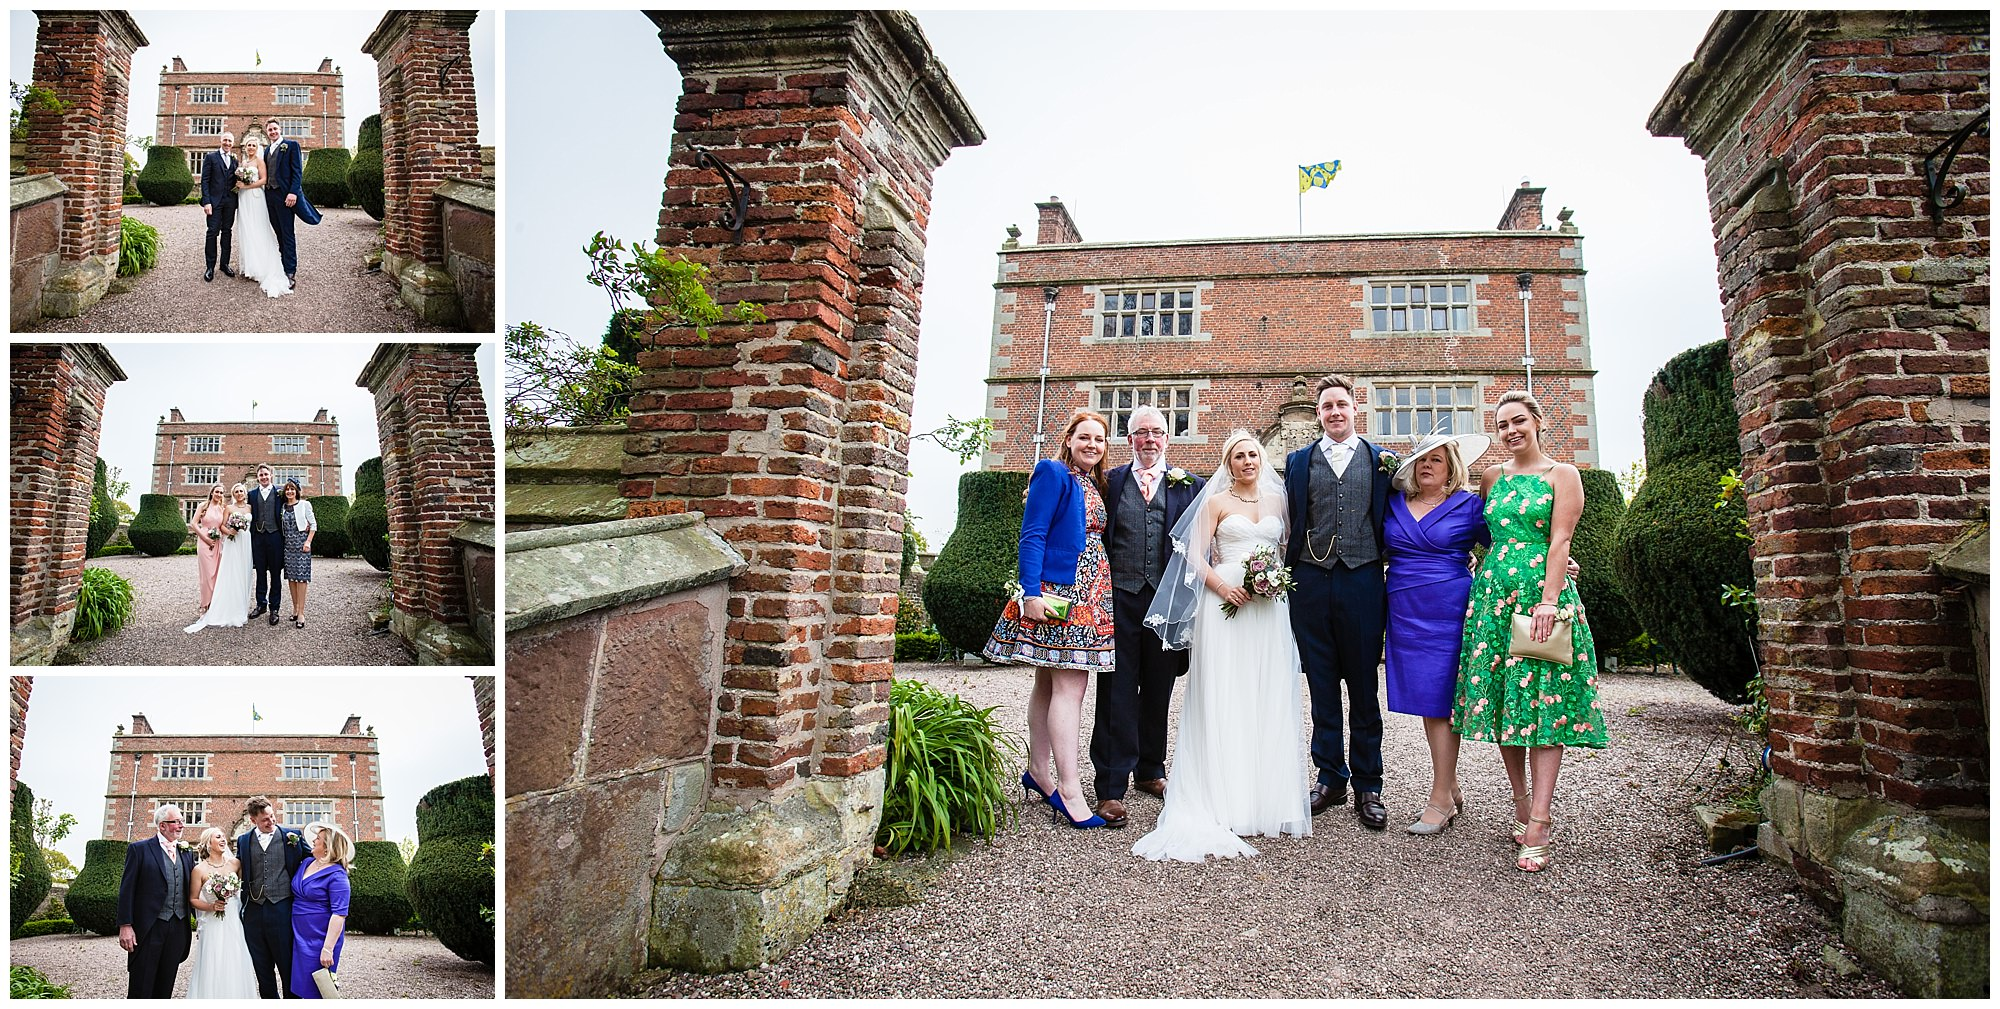 family photos infront of soulton hall shropshire wedding venue